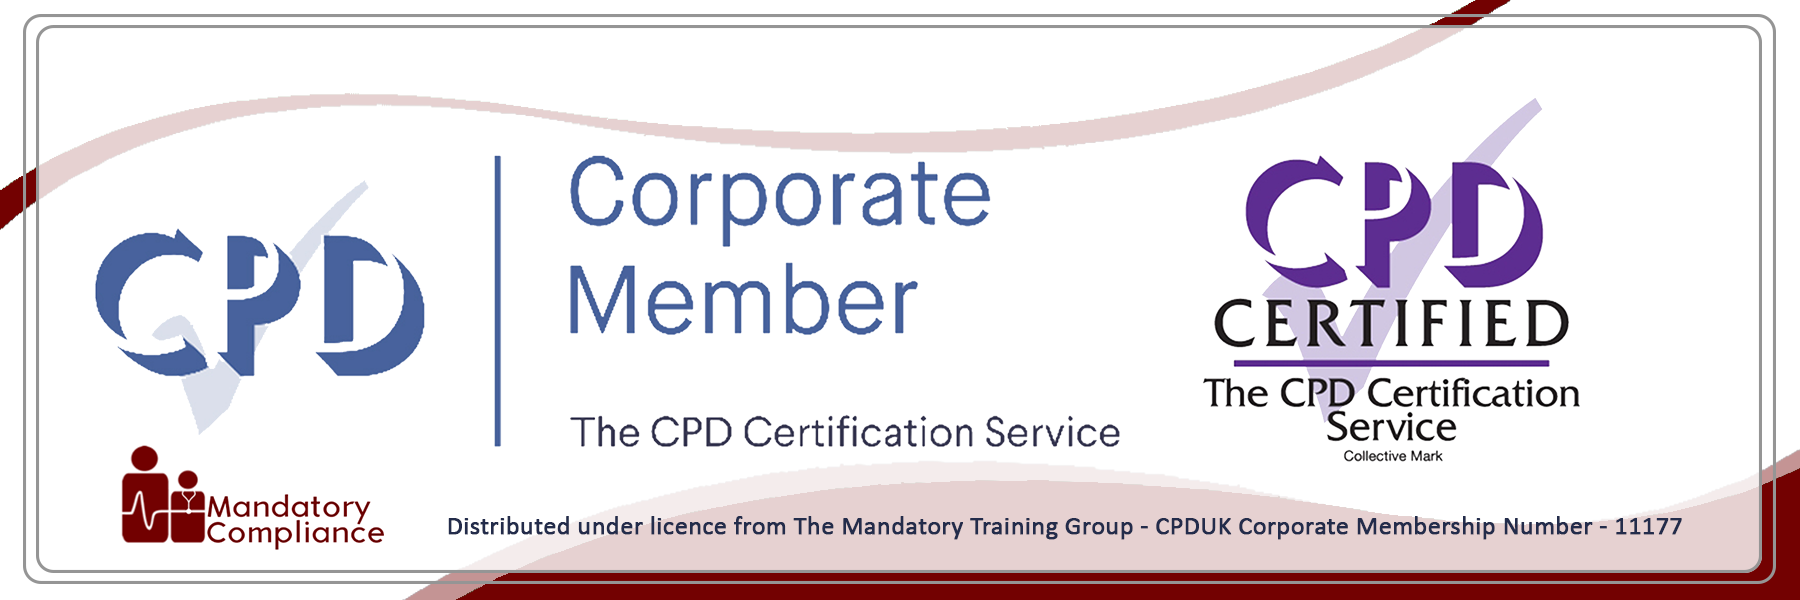 Parkinson's Disease Training - Online Training Course - CPD Accredited - Mandatory Compliance UK -